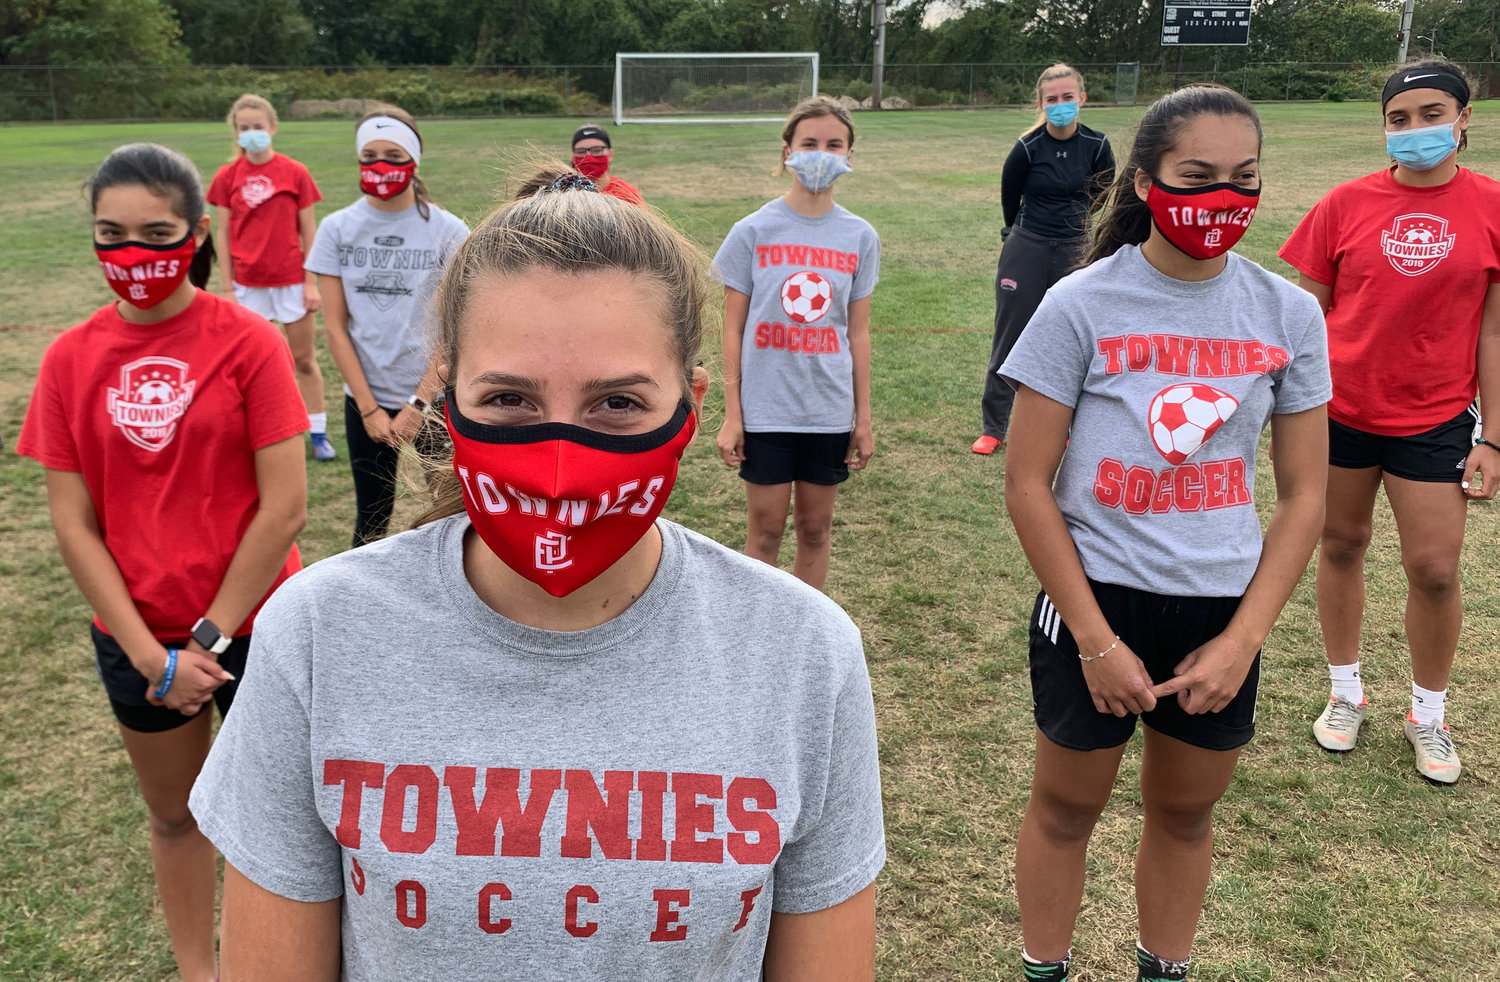 The EPHS girls' soccer team began preparation for the 2020 fall season under new pandemic guidance issued by the RIIL, including the wearing of masks.